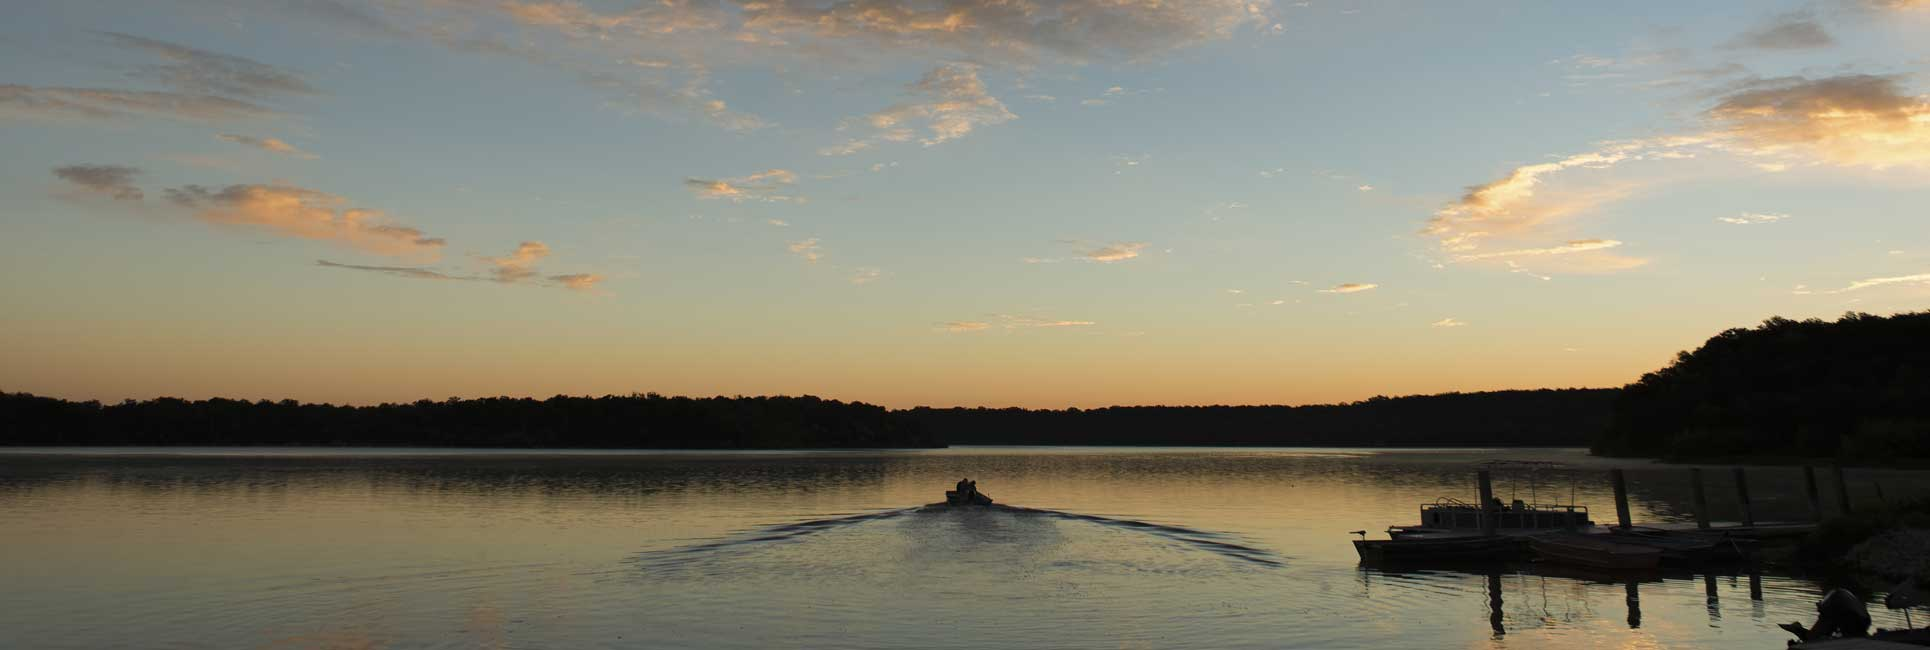 A bass boat leaving the dock with a small wake behind during sunrise on the clam waters of Lake Calaveras, TX